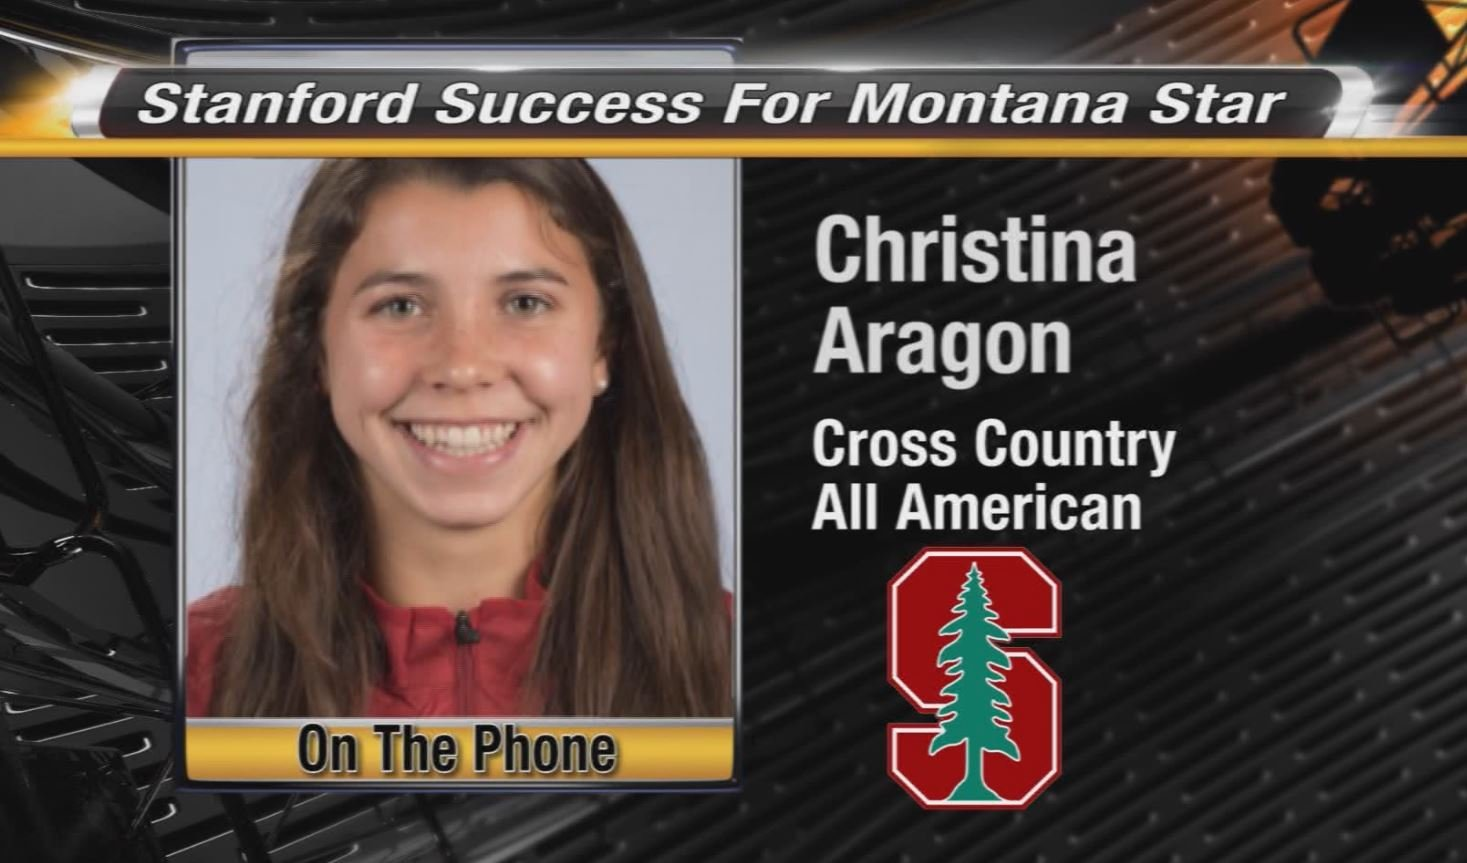 Stanford success for Montana star; catching up with Christina Aragon